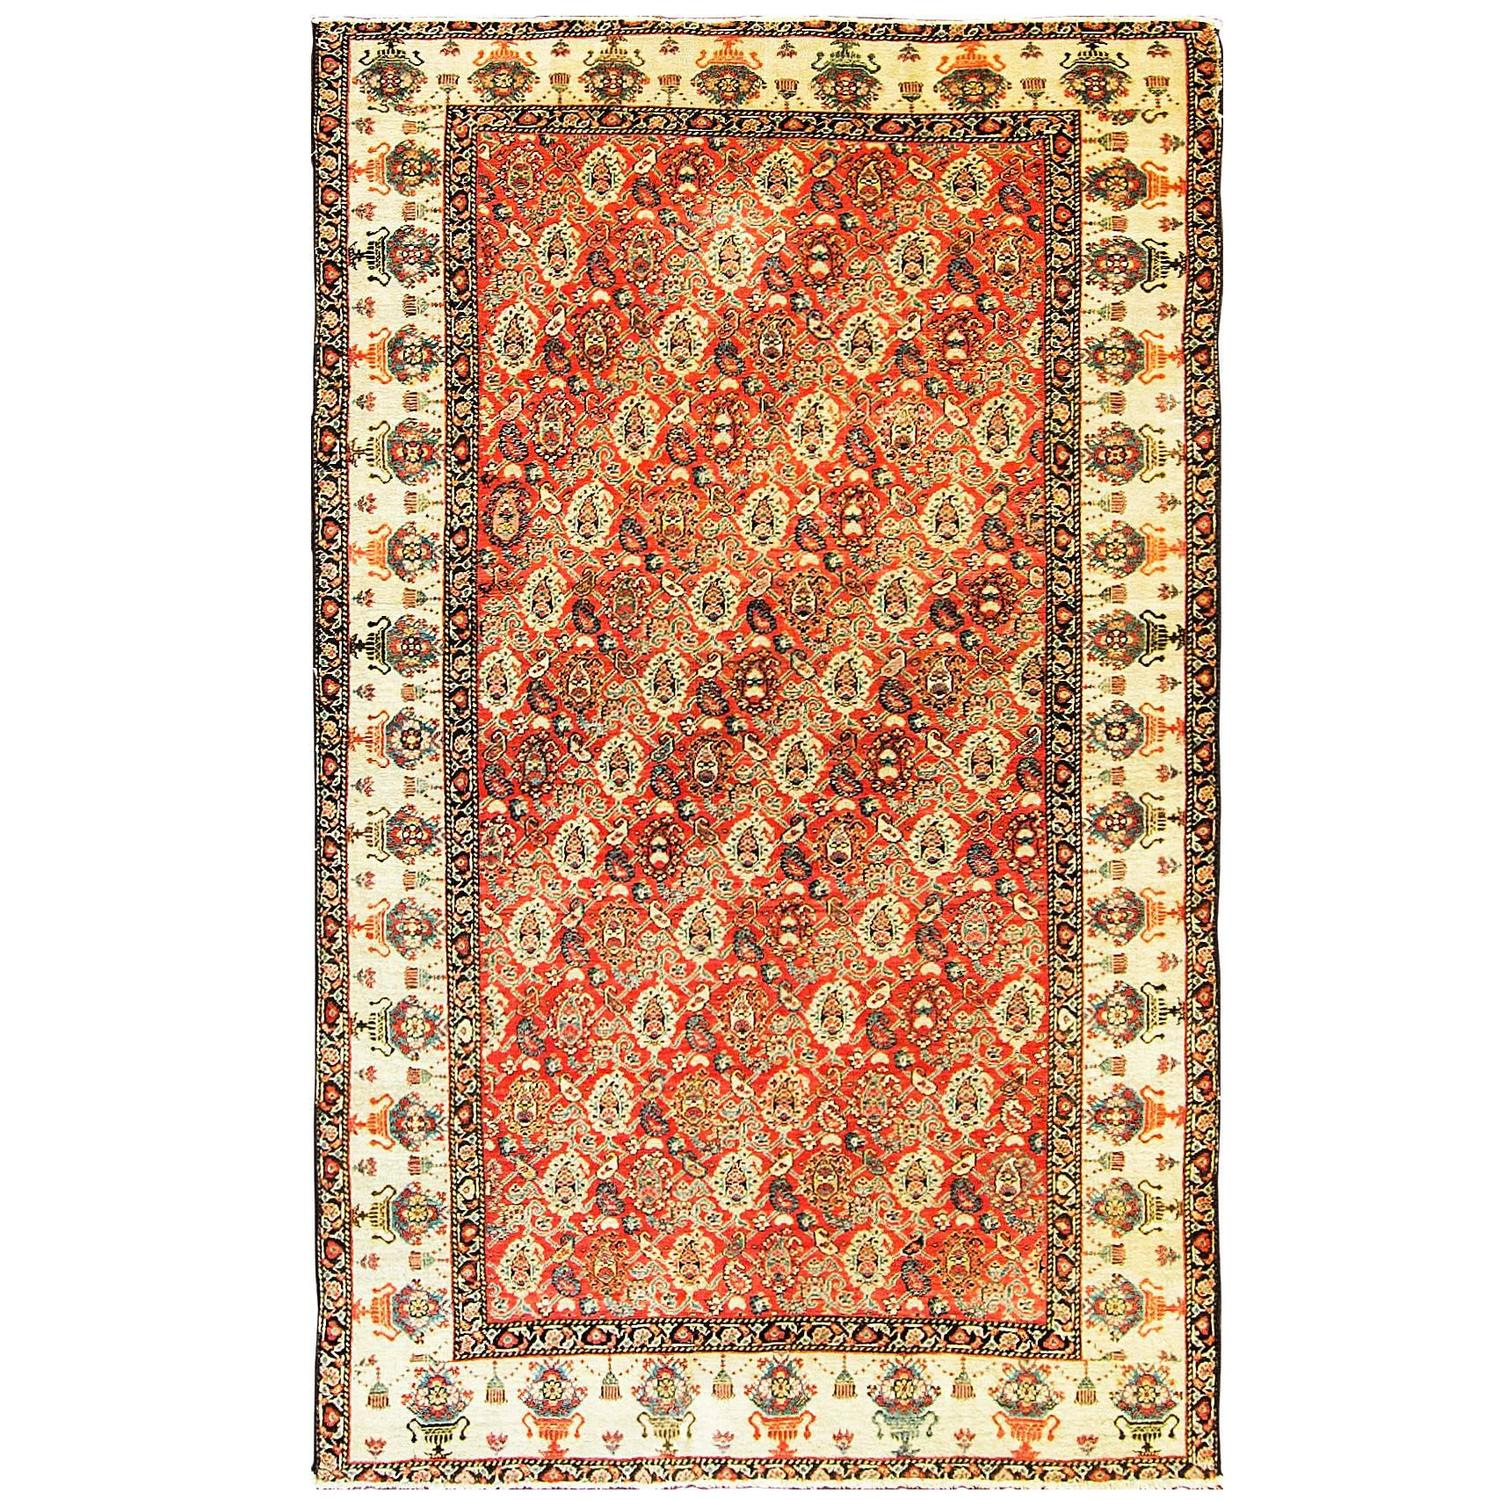 Antique Zel-I-Sultan Rug For Sale At 1stdibs